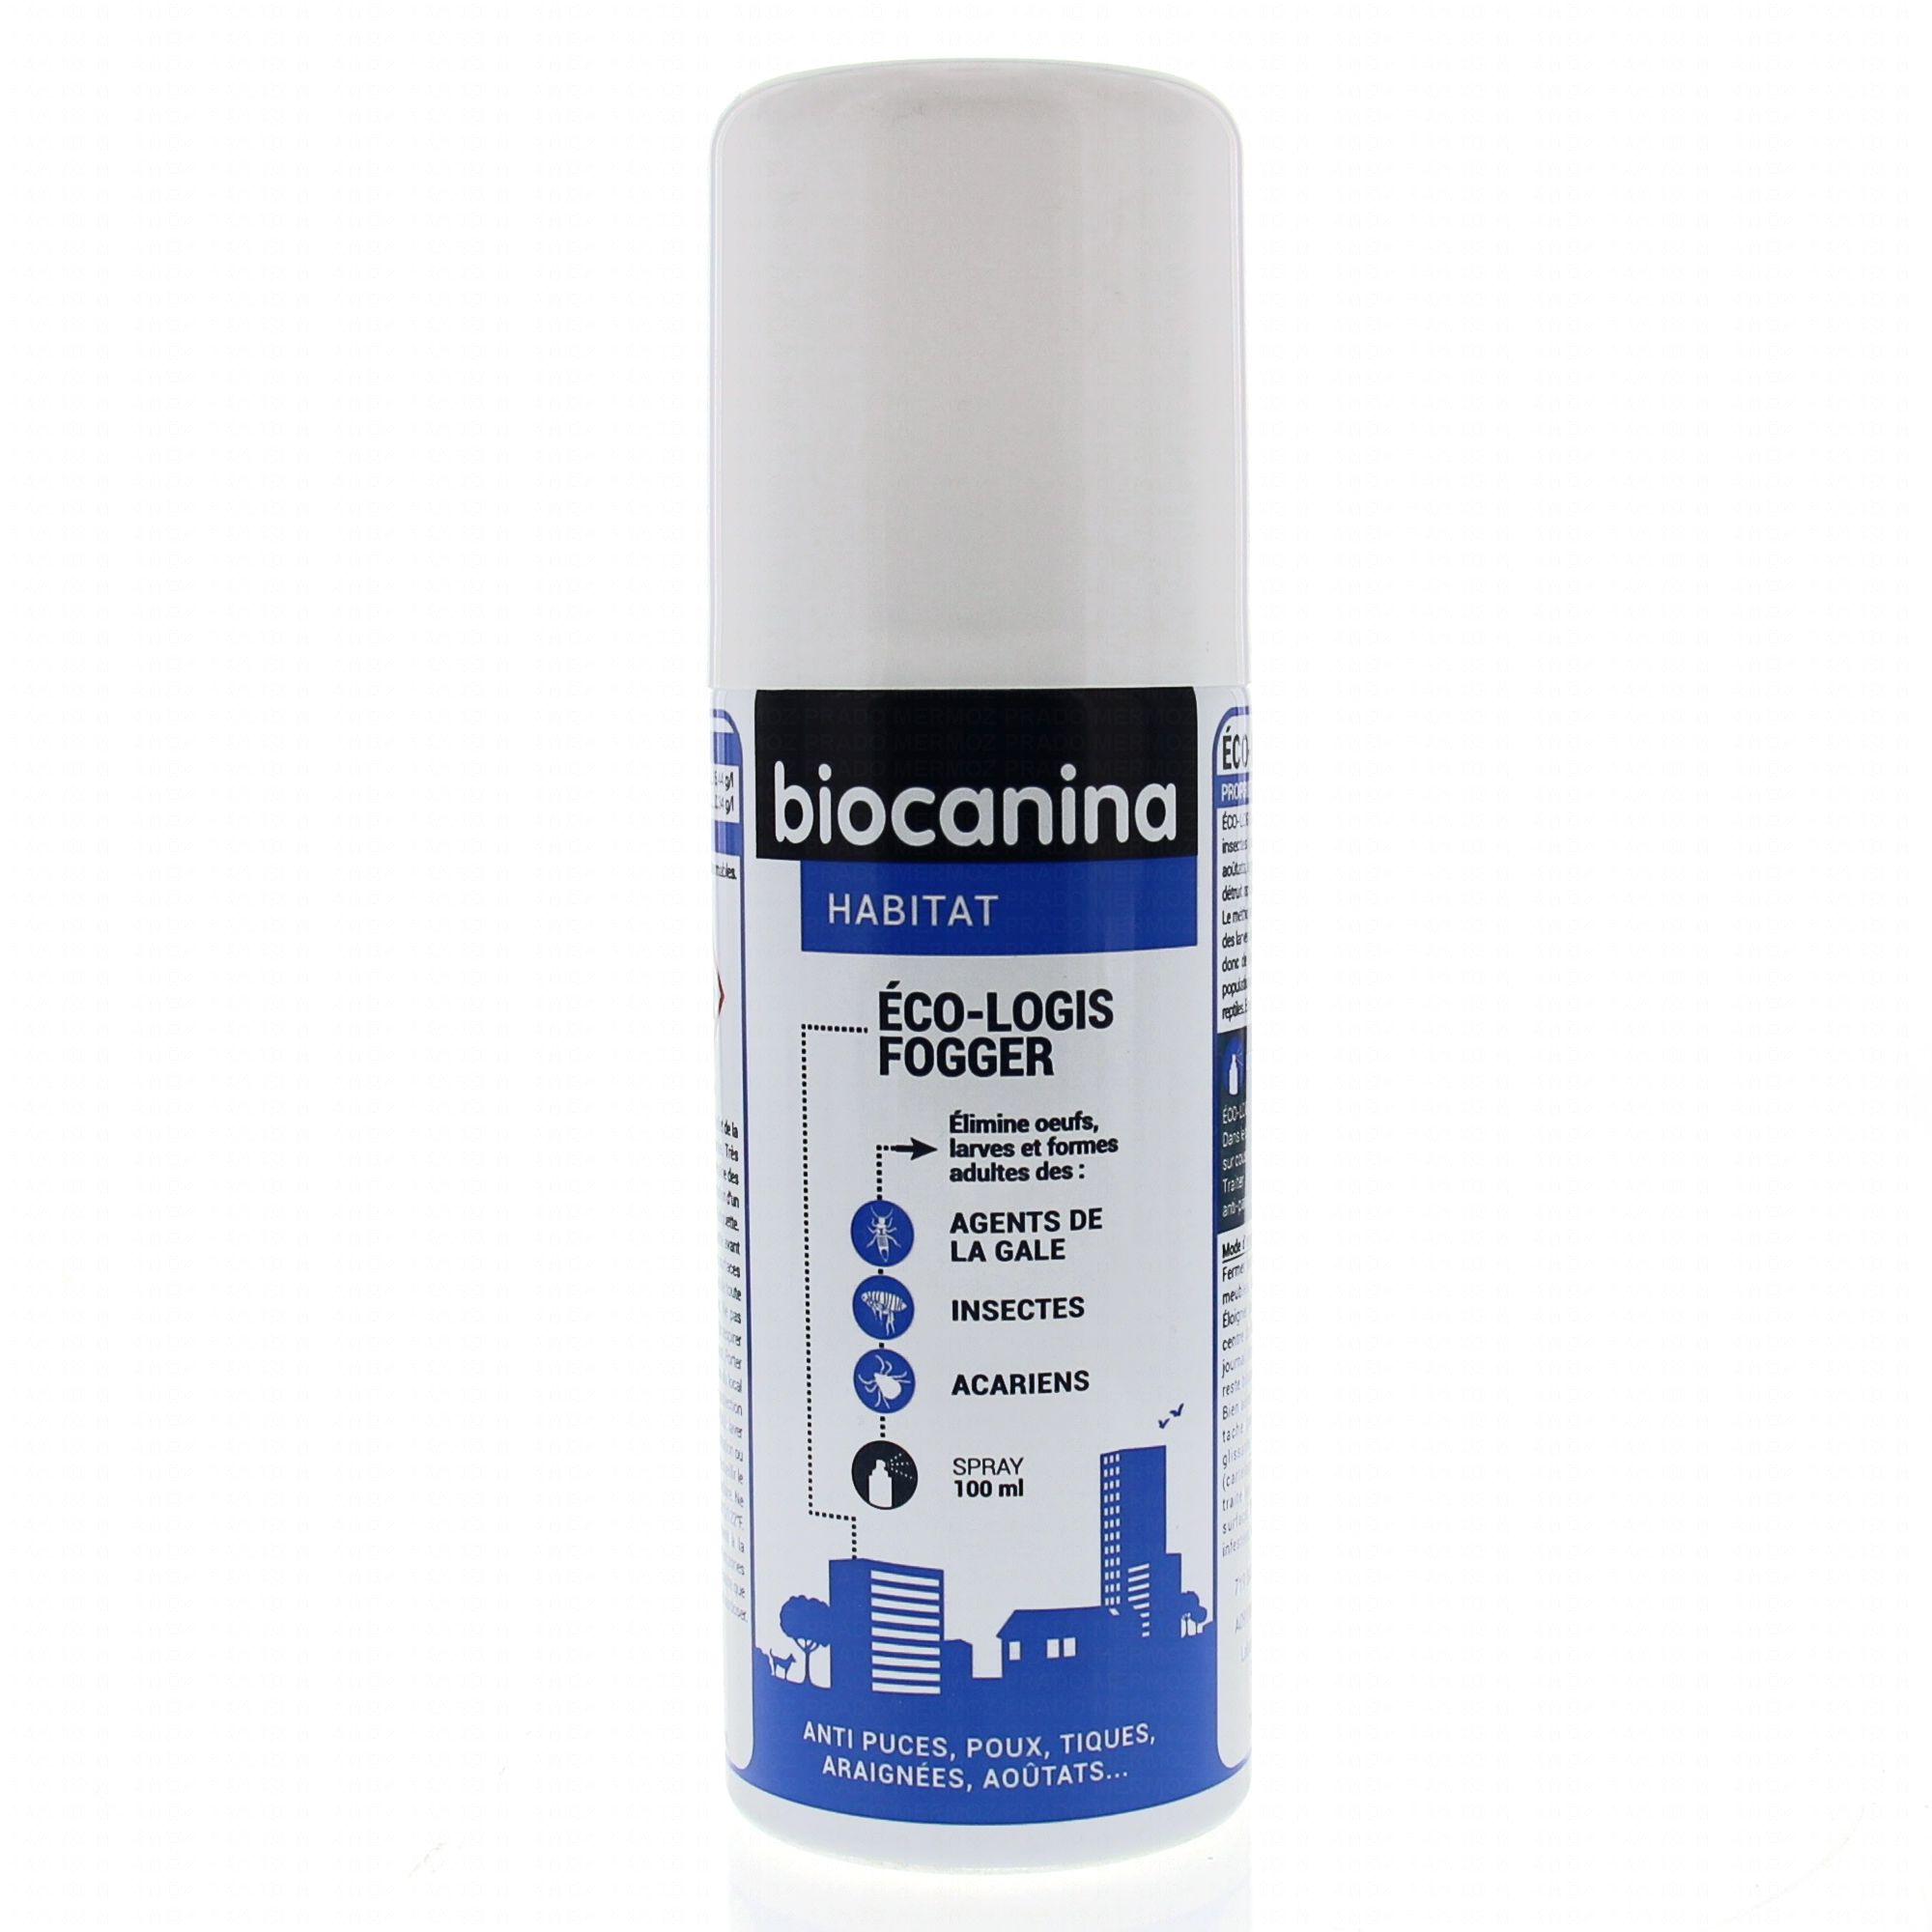 Biocanina co logis fogger spray 100ml pharmacie en ligne prado mermoz - Fumigene anti puce pharmacie ...